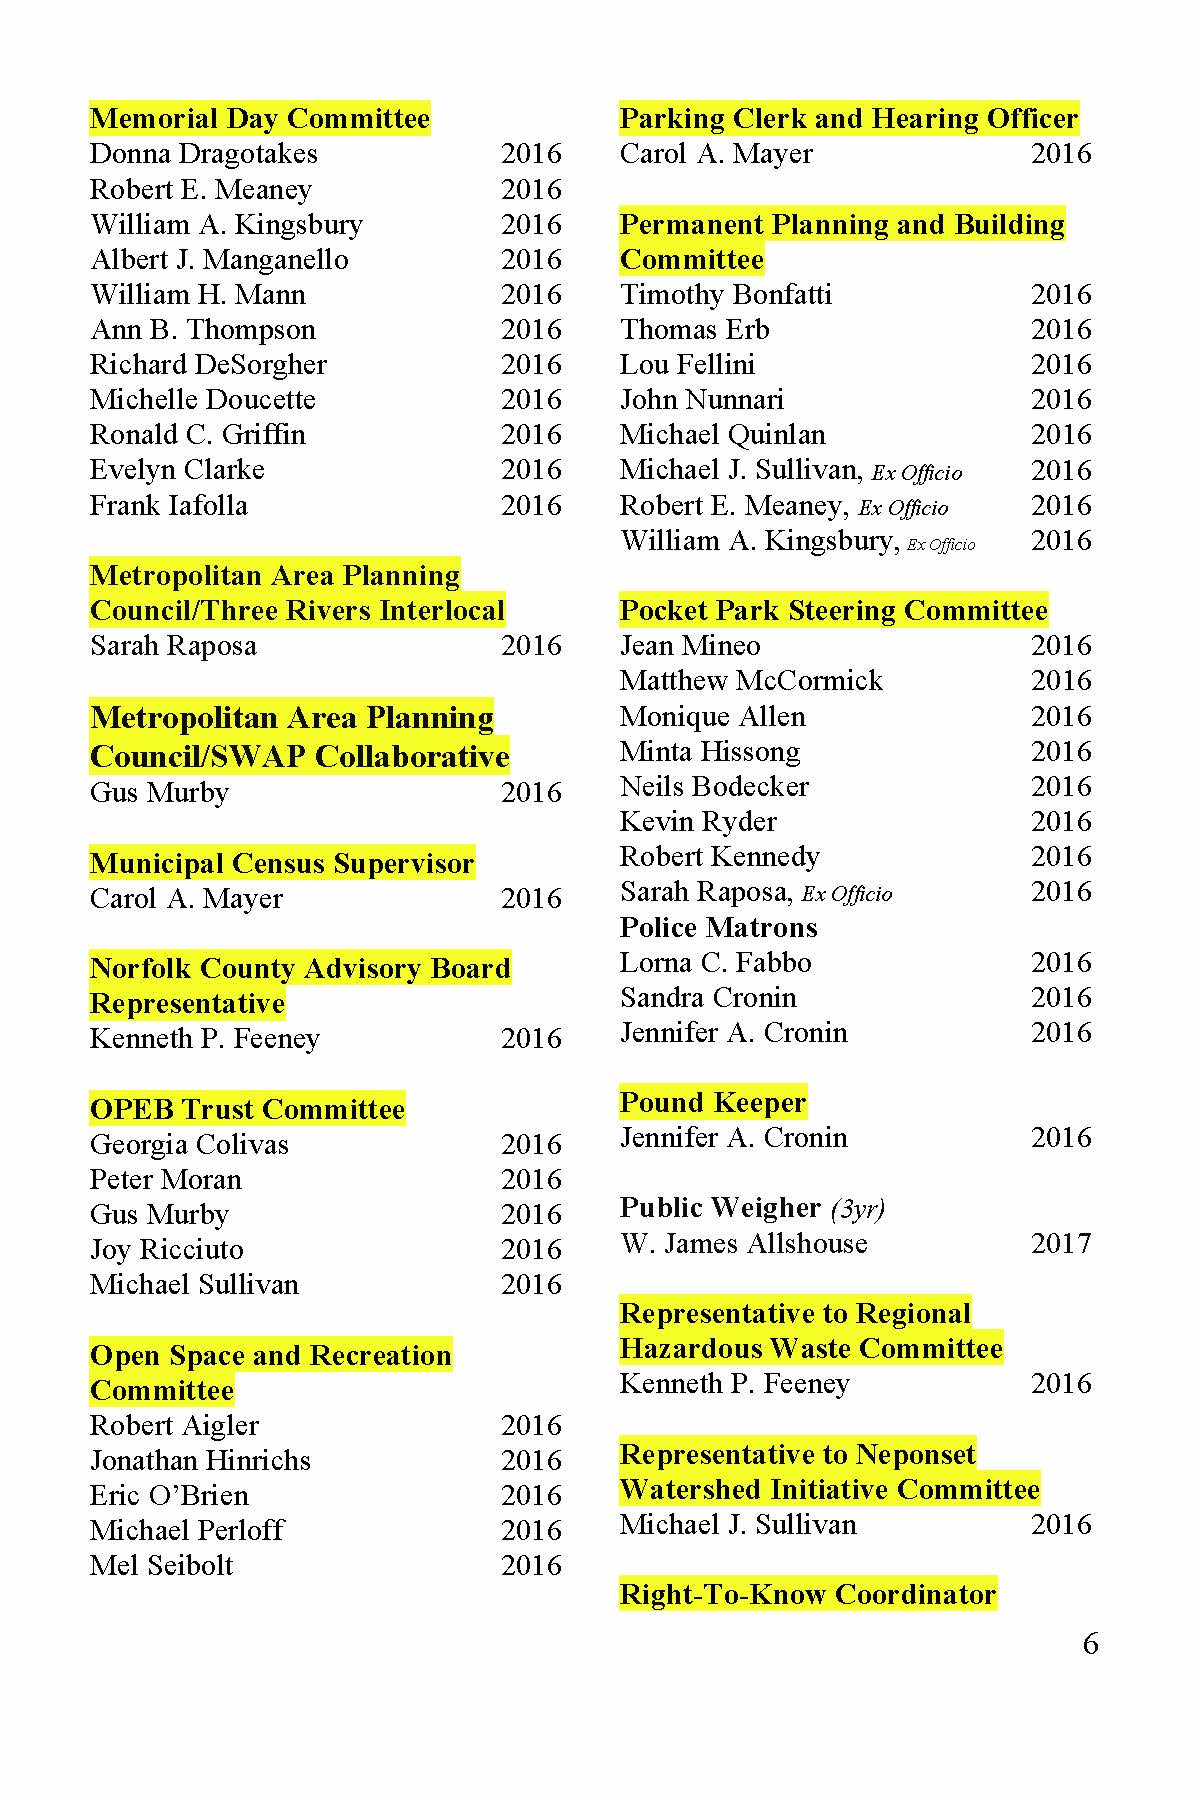 20160525-Elected and Appointed for Annual Report_Page_6